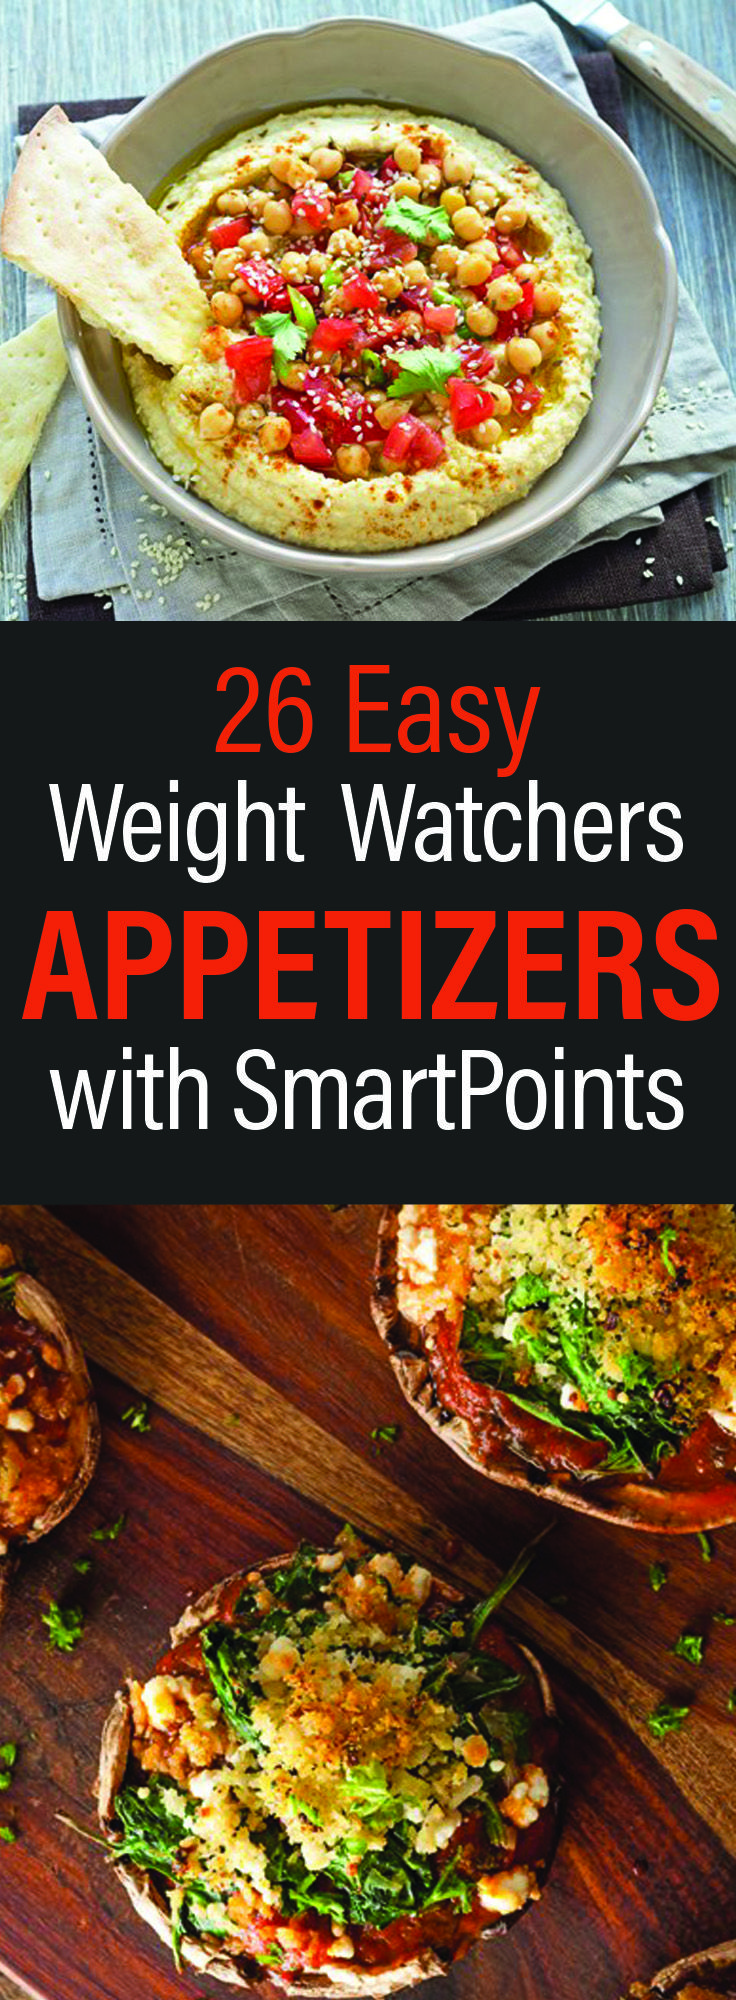 26 Easy Weight Watchers Appetizers with SmartPoints